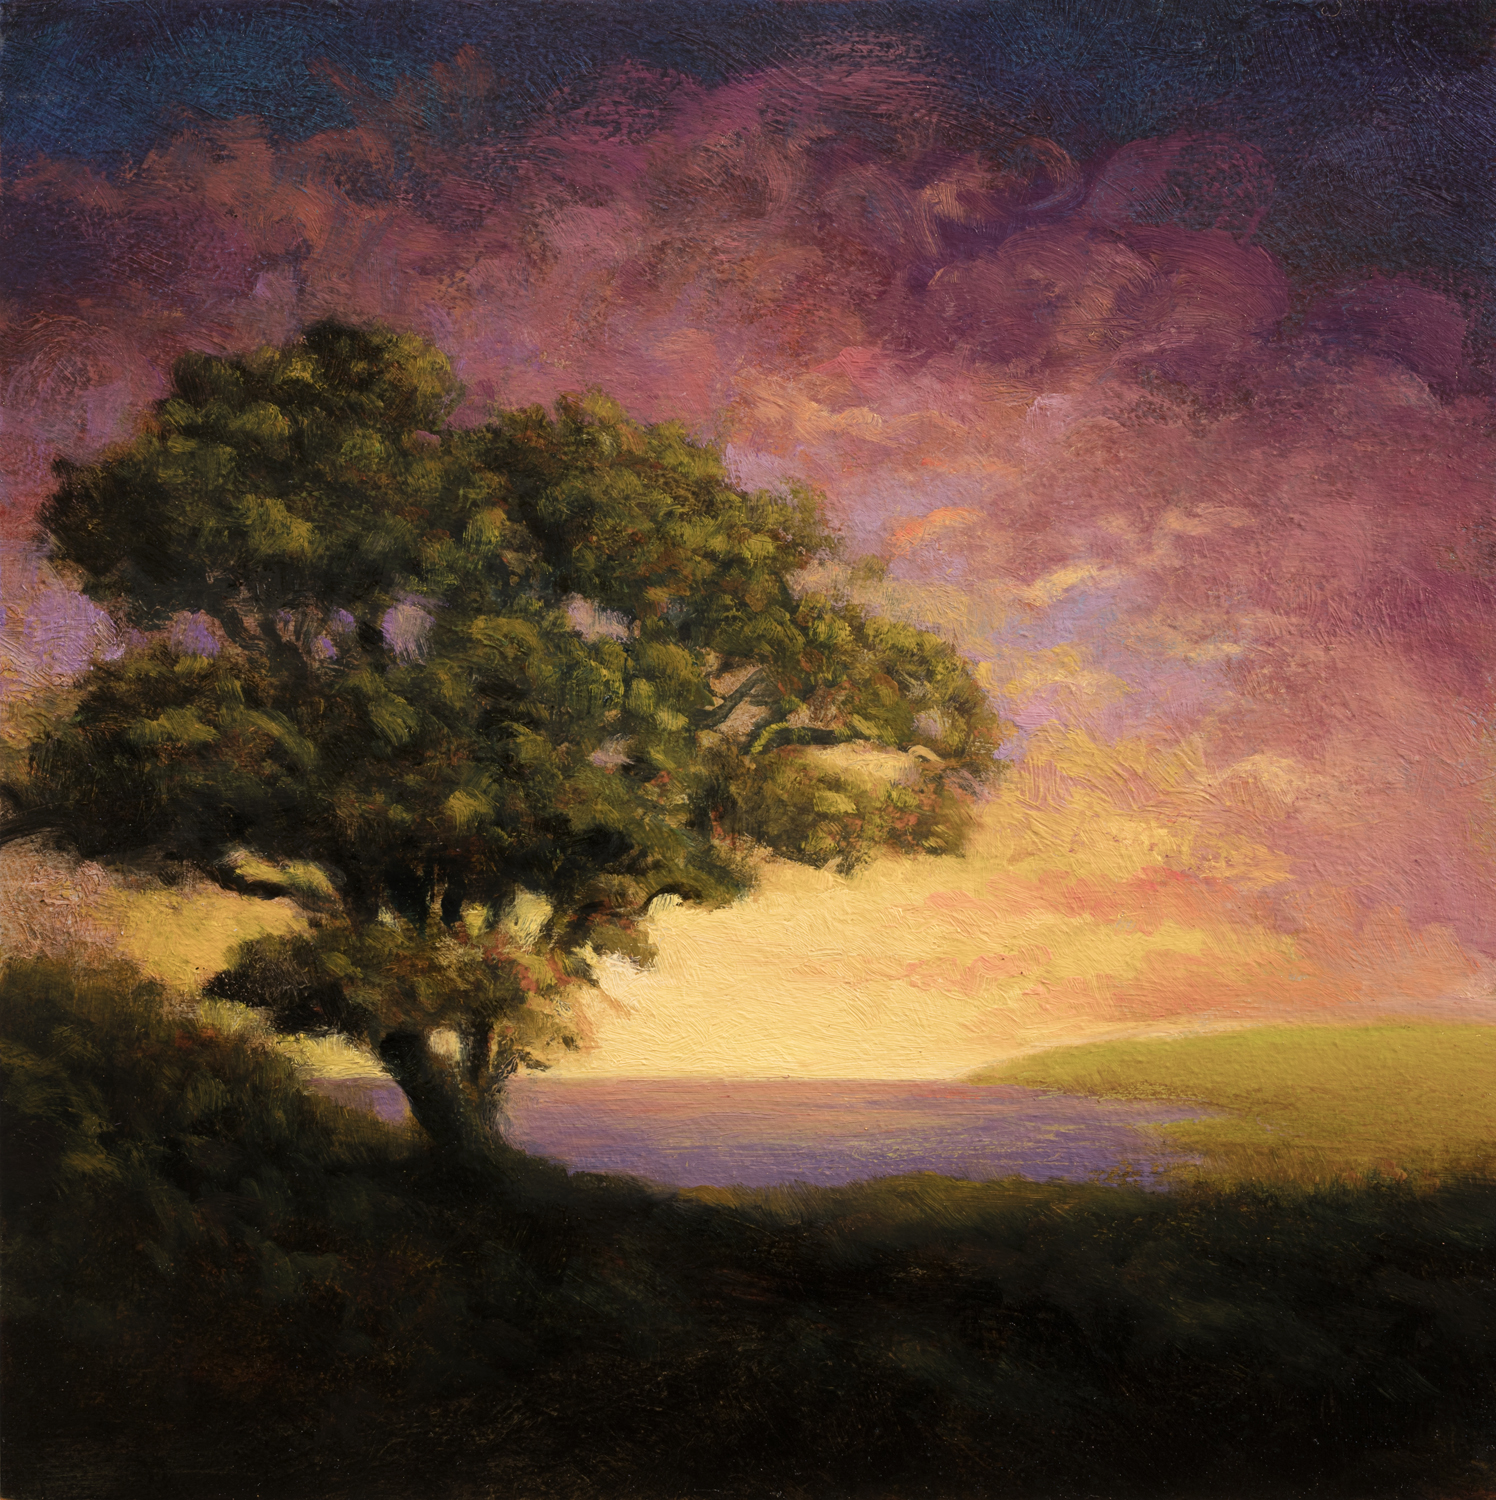 Afternoon Glow by M Francis McCarthy - 8x8 Oil on Wood Panel